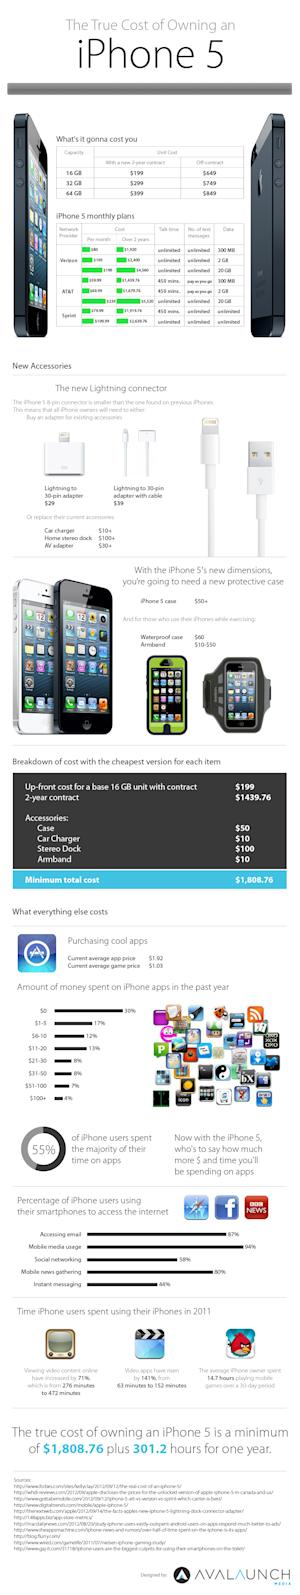 The iPhone 5 Will Cost You at Least $1,800 [INFOGRAPHIC]